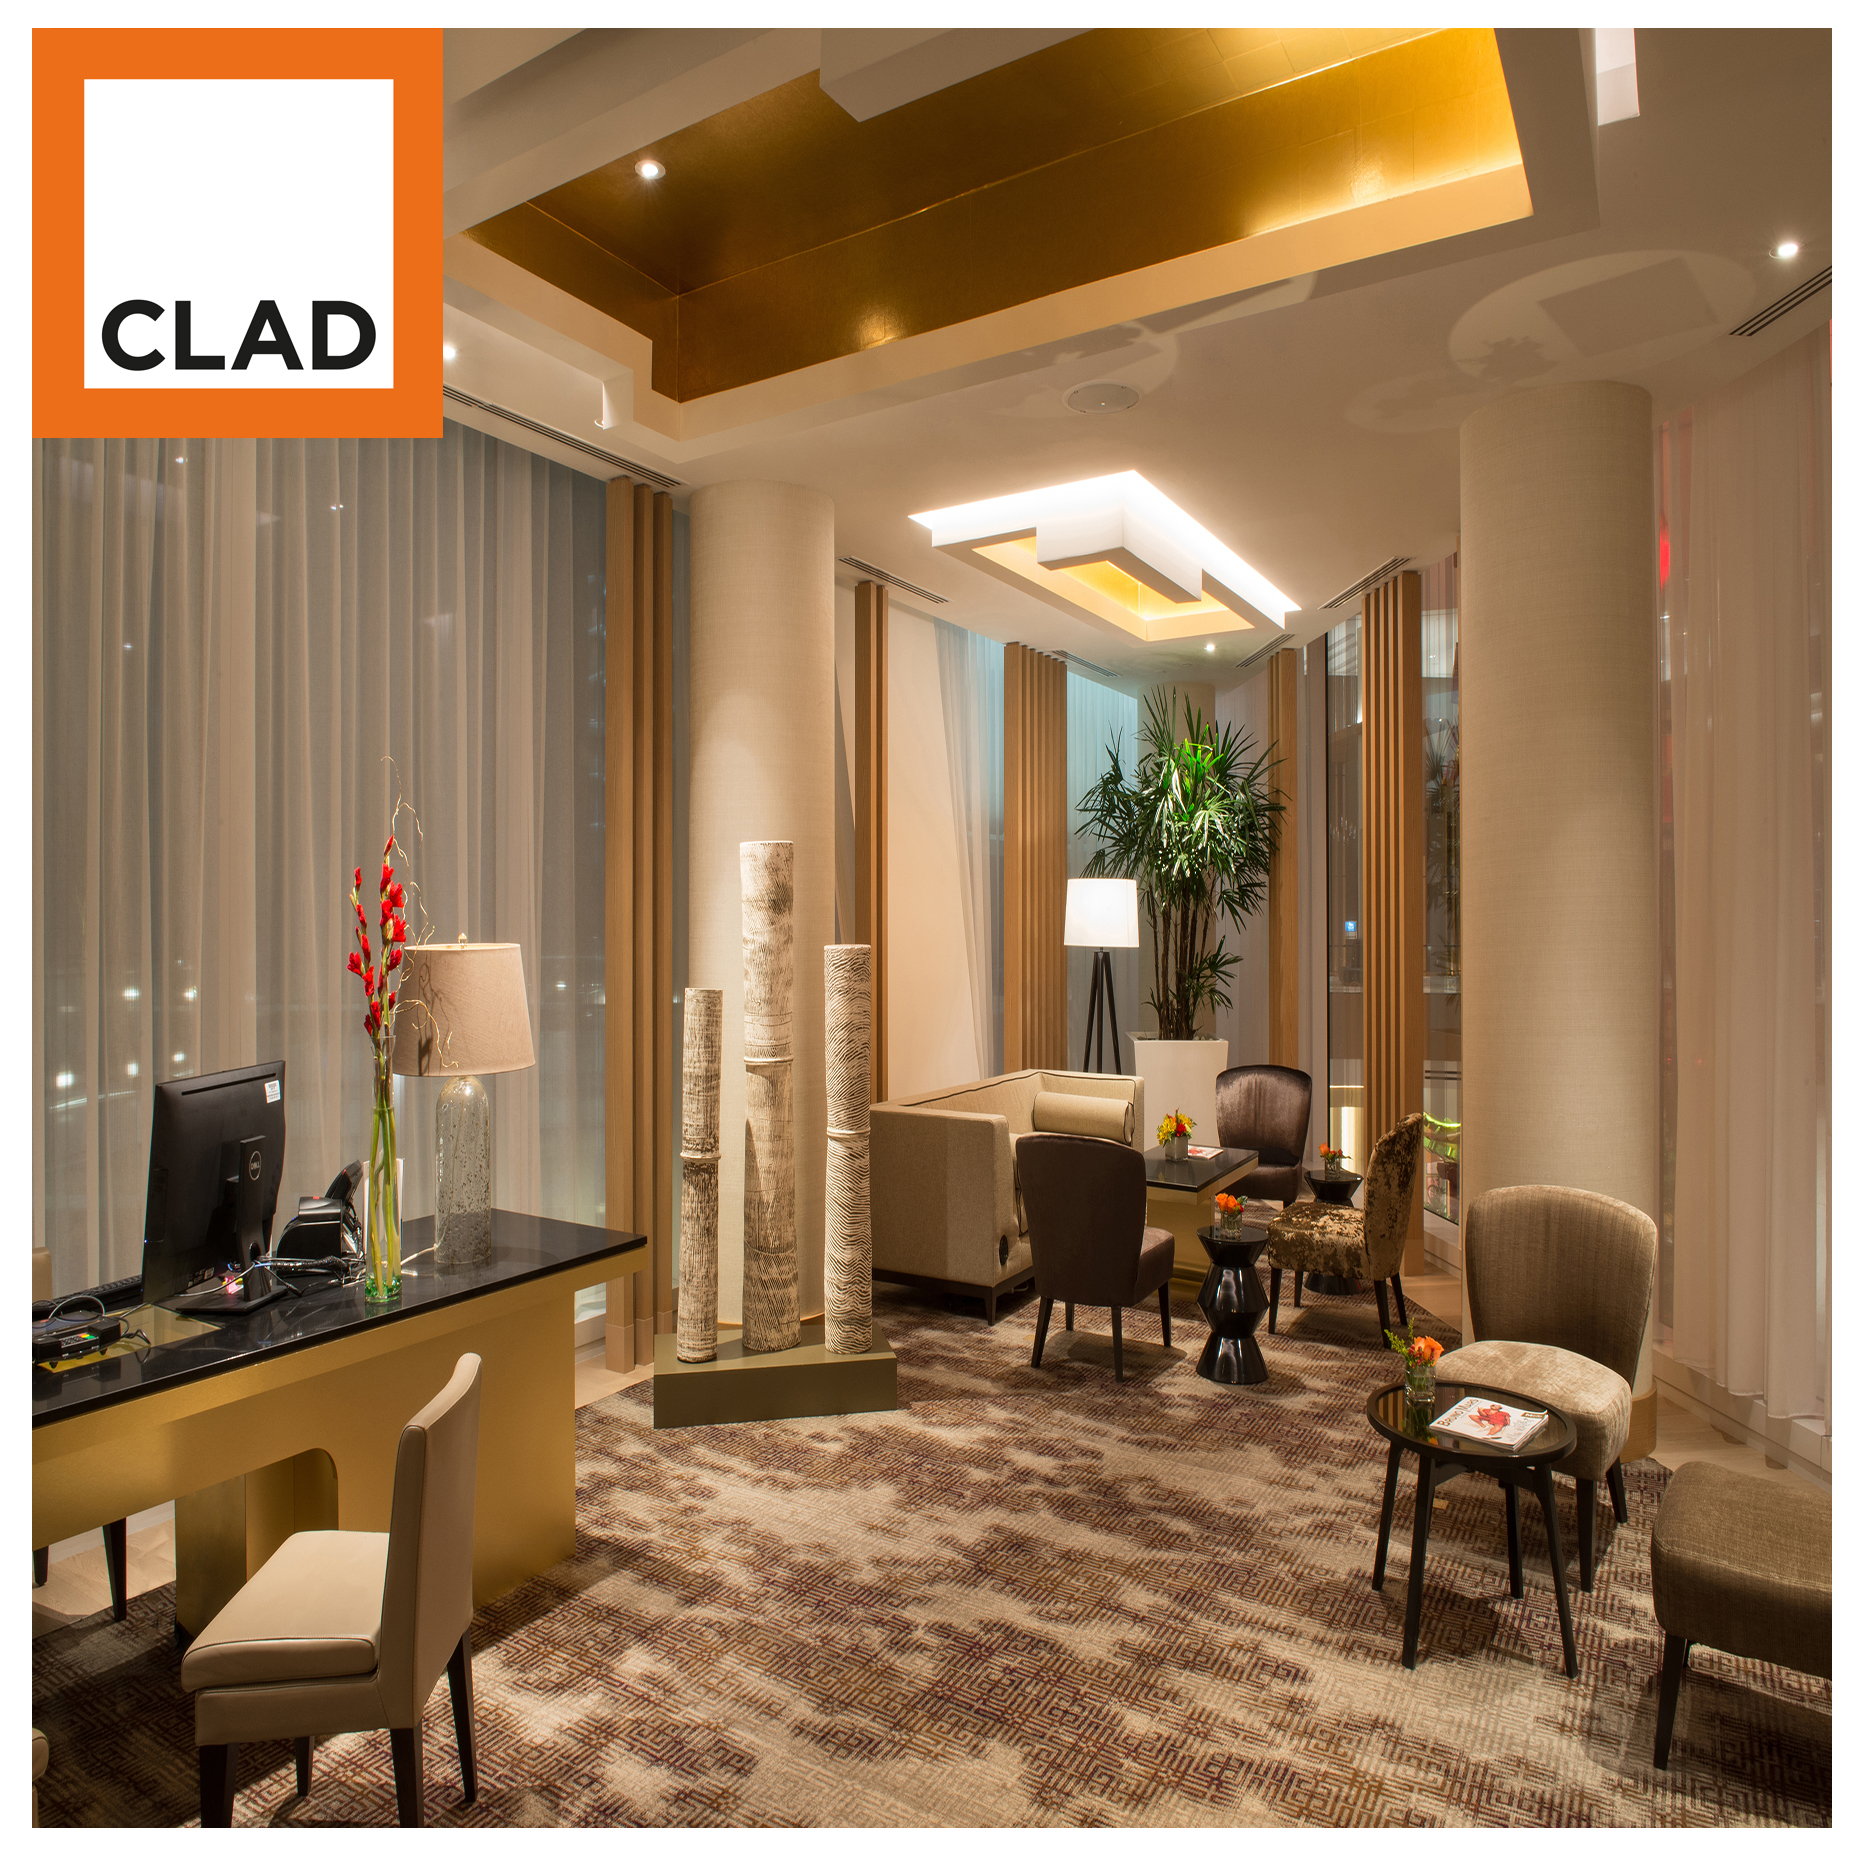 CLADGlobal covers MGM National Harbor, February 2017. - Credit: CLAD Global, February 2017